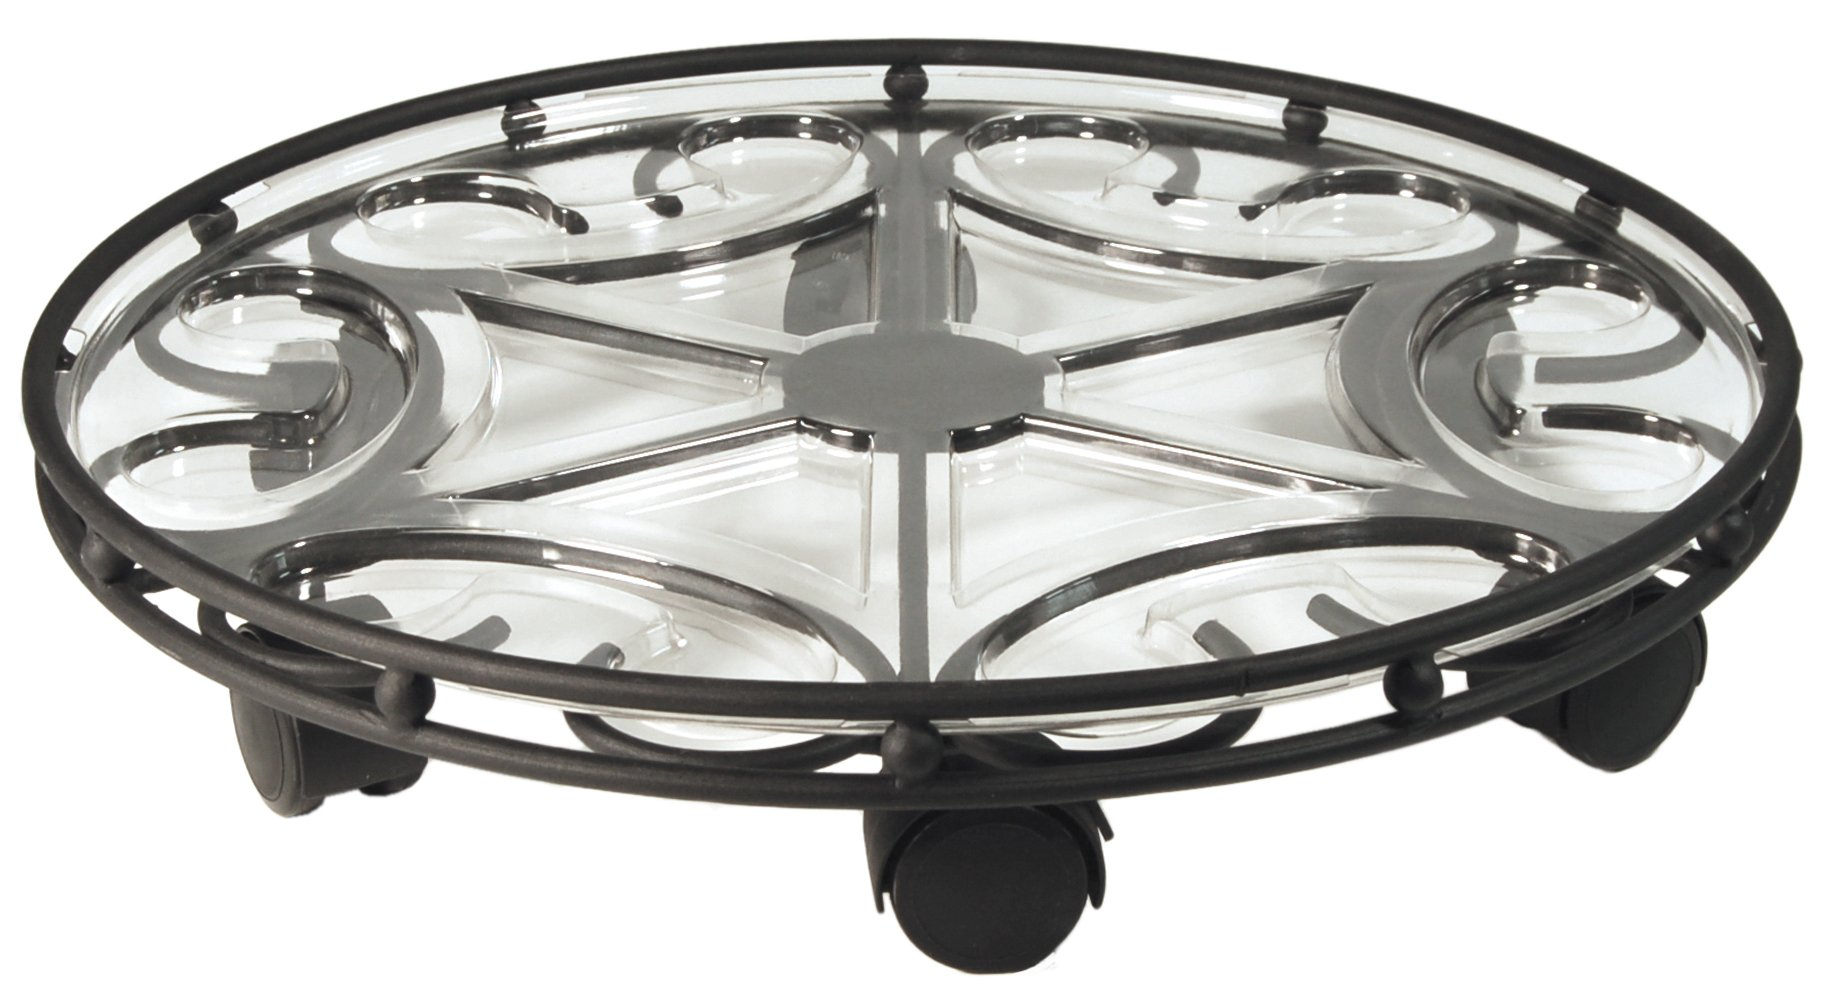 Plastec SC21BK Deluxe Saucer Caddy, 21-Inch, Black